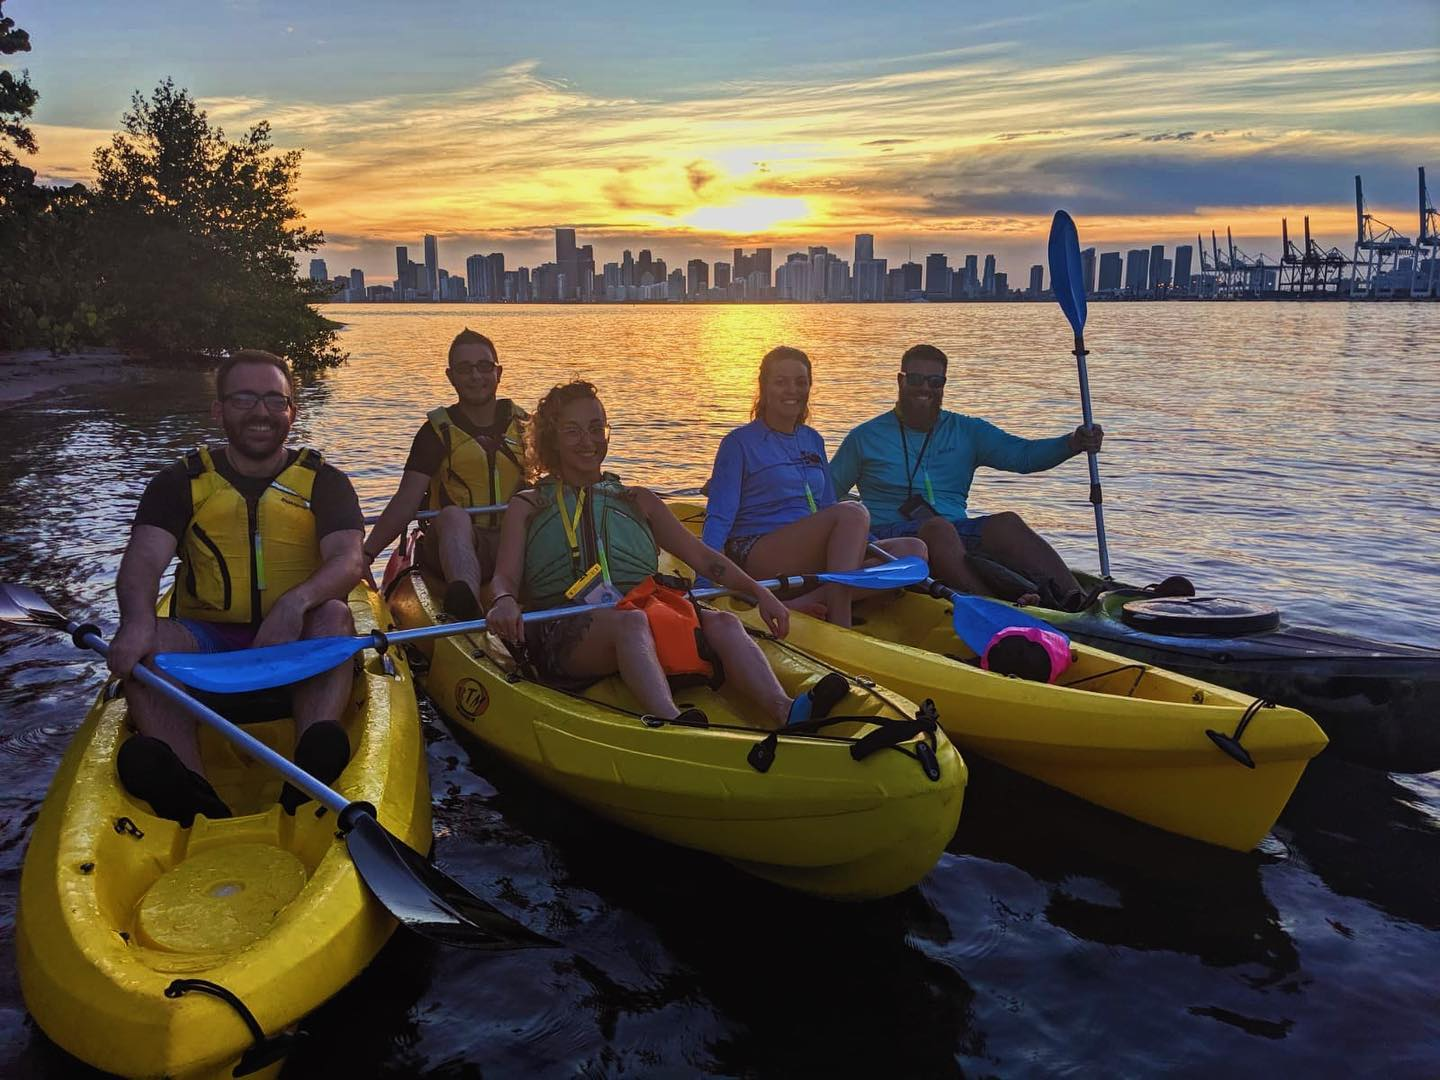 Sunset Kayak & Paddleboard Adventure Tours -  October 1st, 2nd, 8th, 9th, 15th, 16th, and 23rd